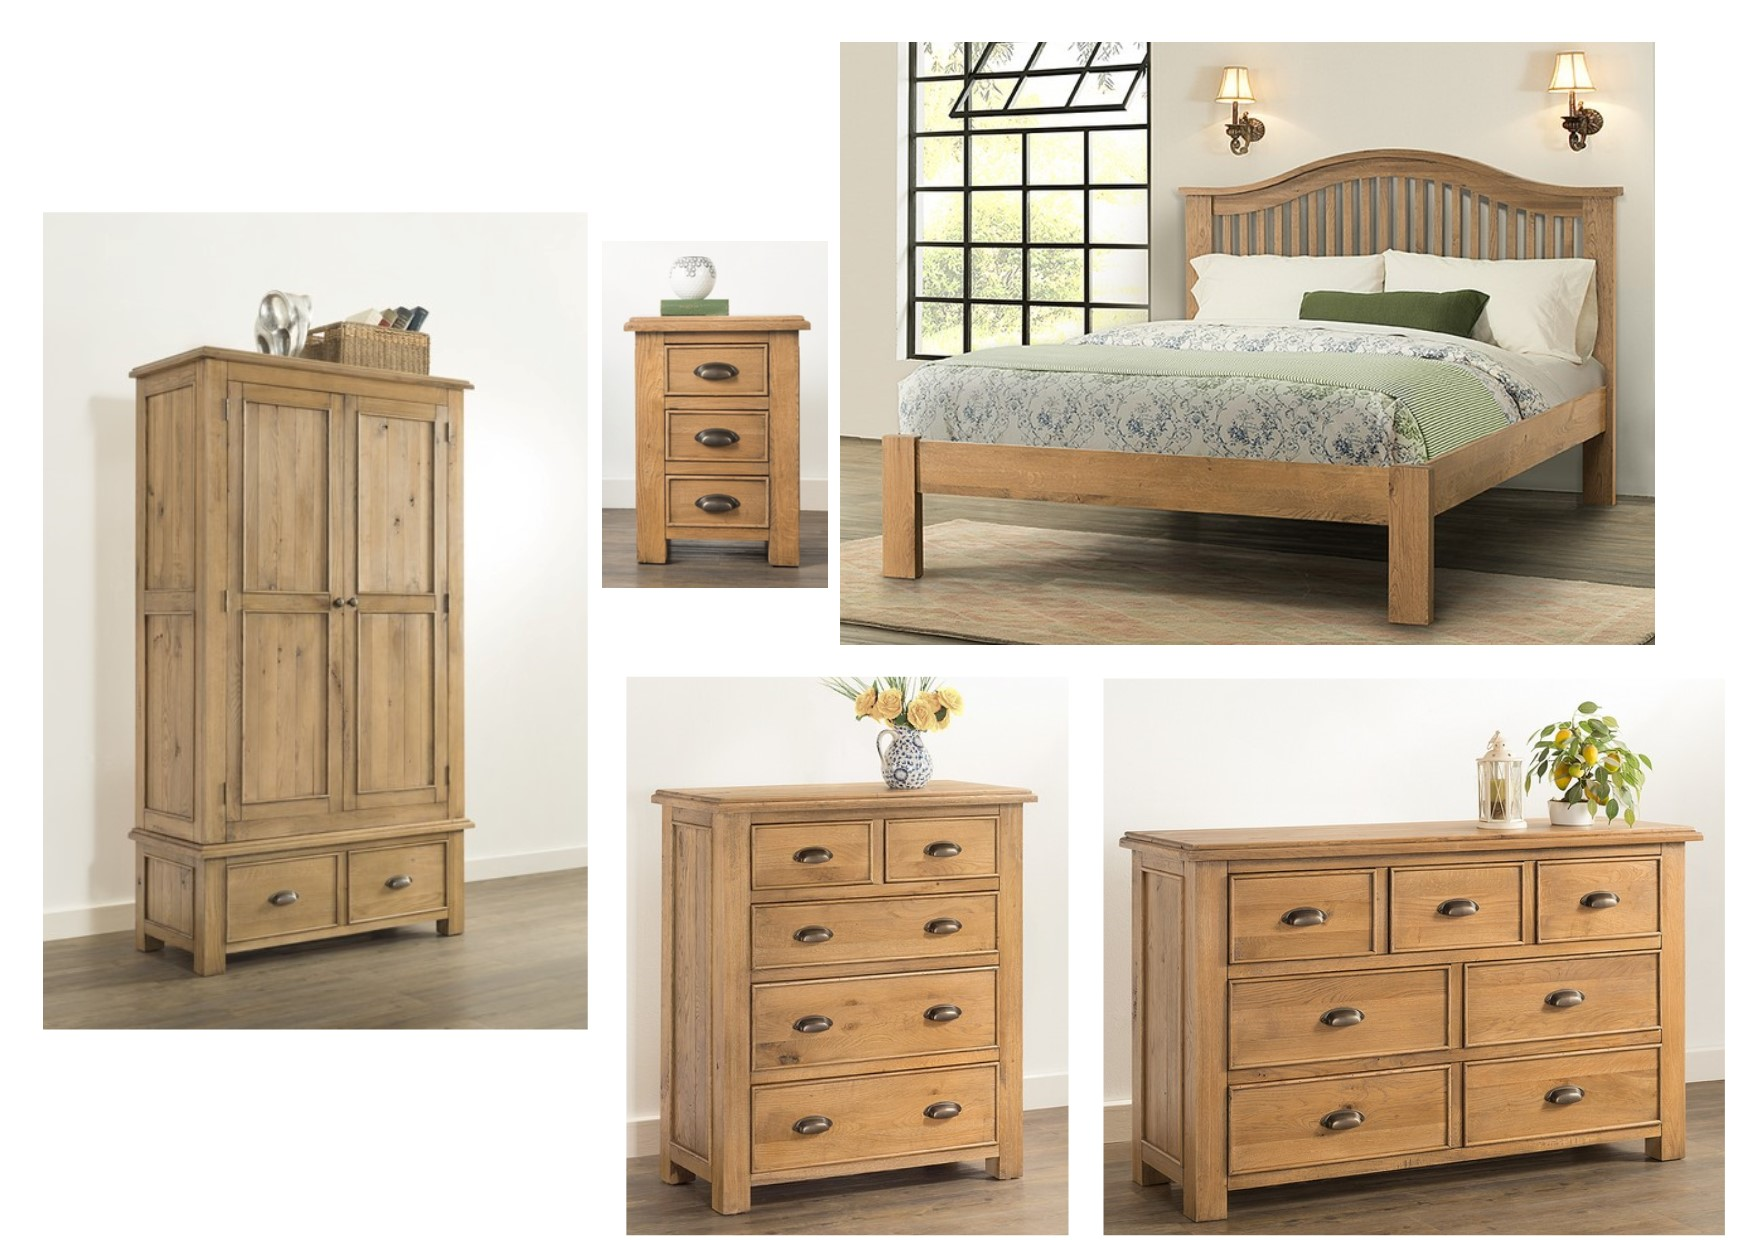 Solid Oak Bedroom Furniture | Autumn Rustic Solid Oak Bedroom Furniture 4ft6 Bed Bedside Chests